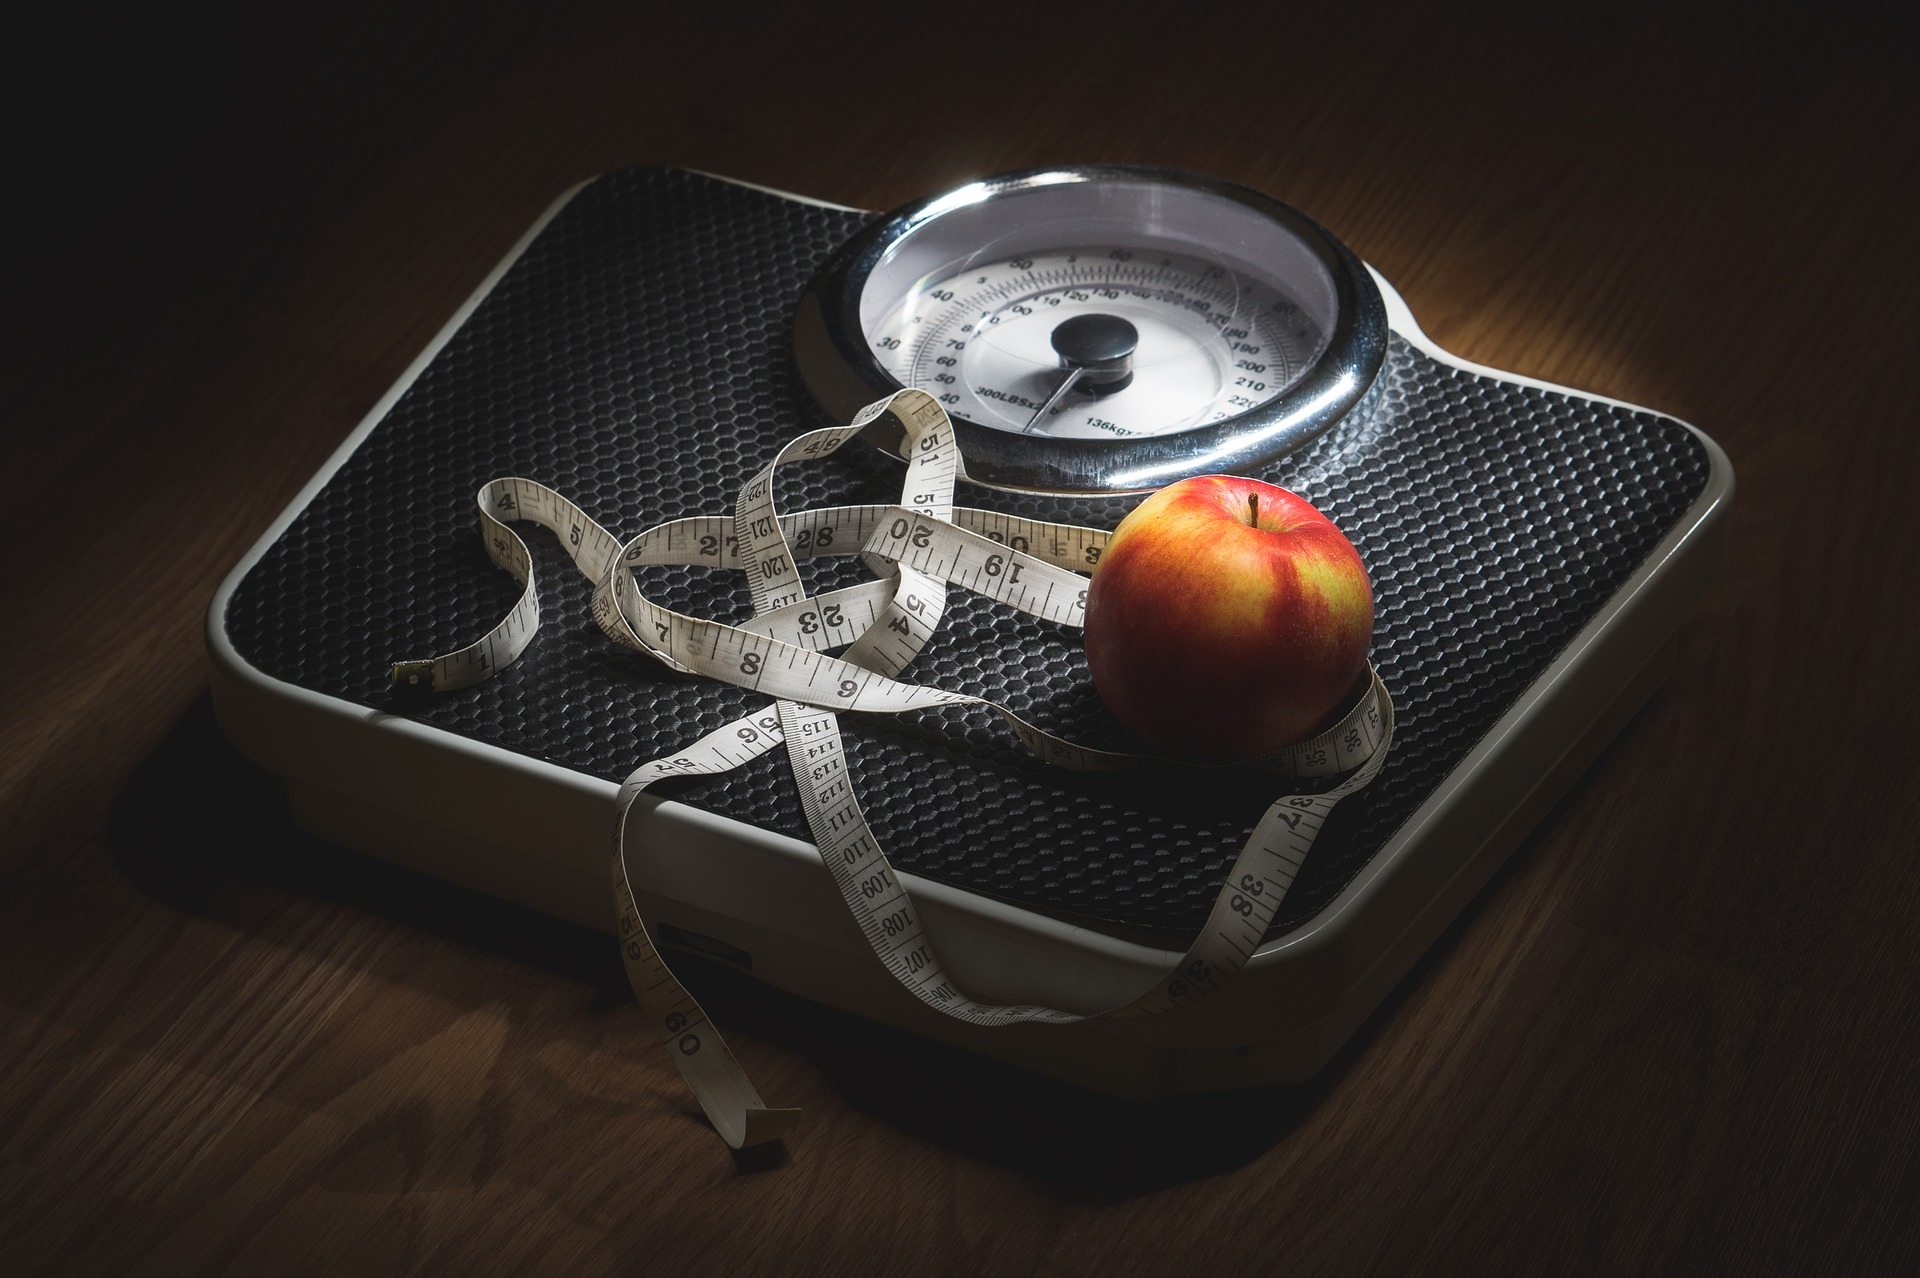 An analog bathroom scale with a measuring tape and an apple placed on top